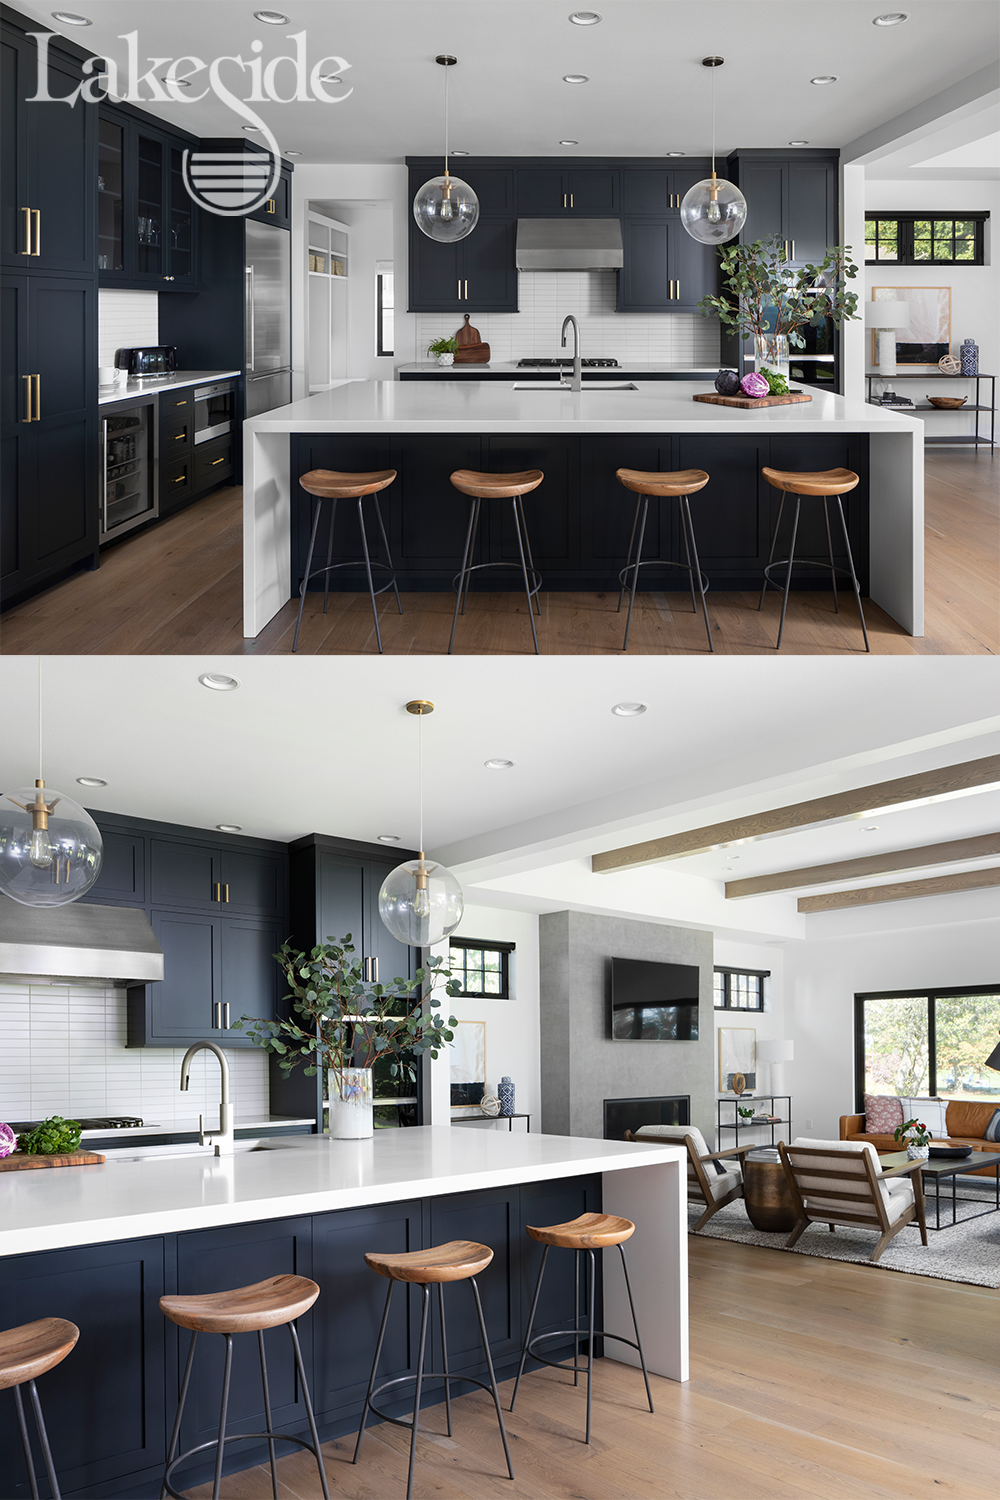 Open Concept Black & White Kitchen